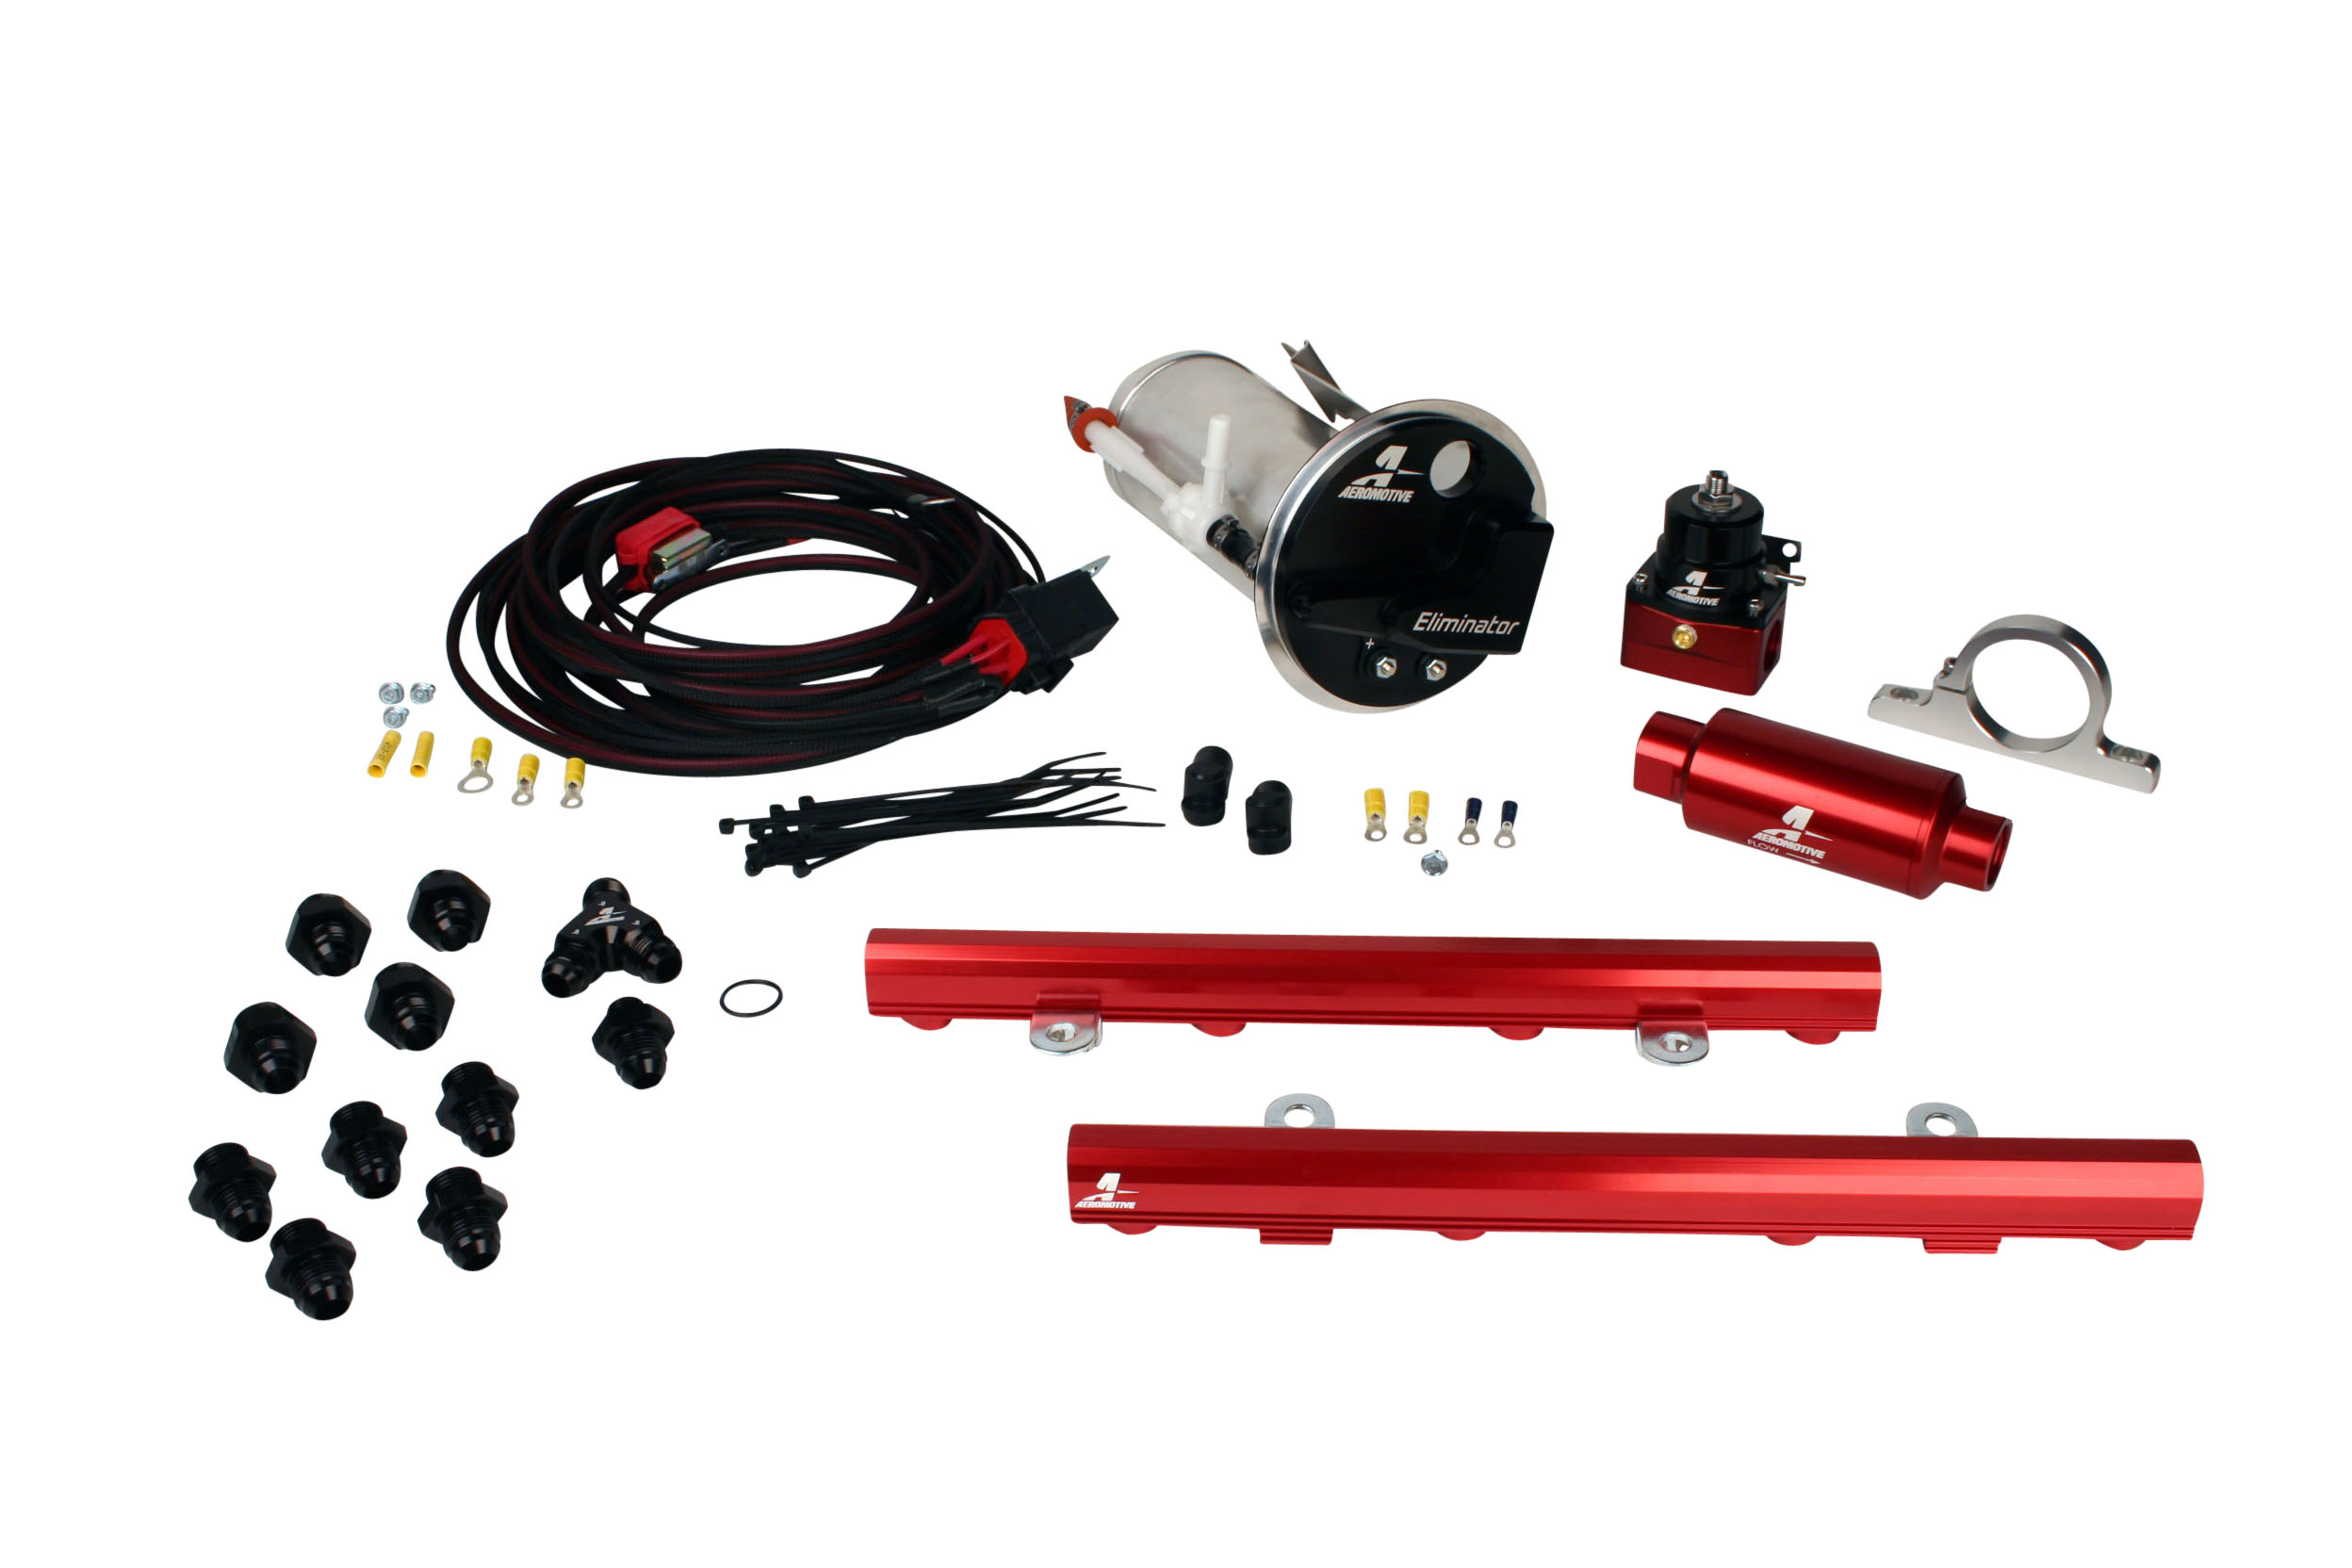 2005-2009 Ford Mustang GT Aeromotive Stealth Eliminator Race Fuel System w/5.0L 4-V Fuel Rails